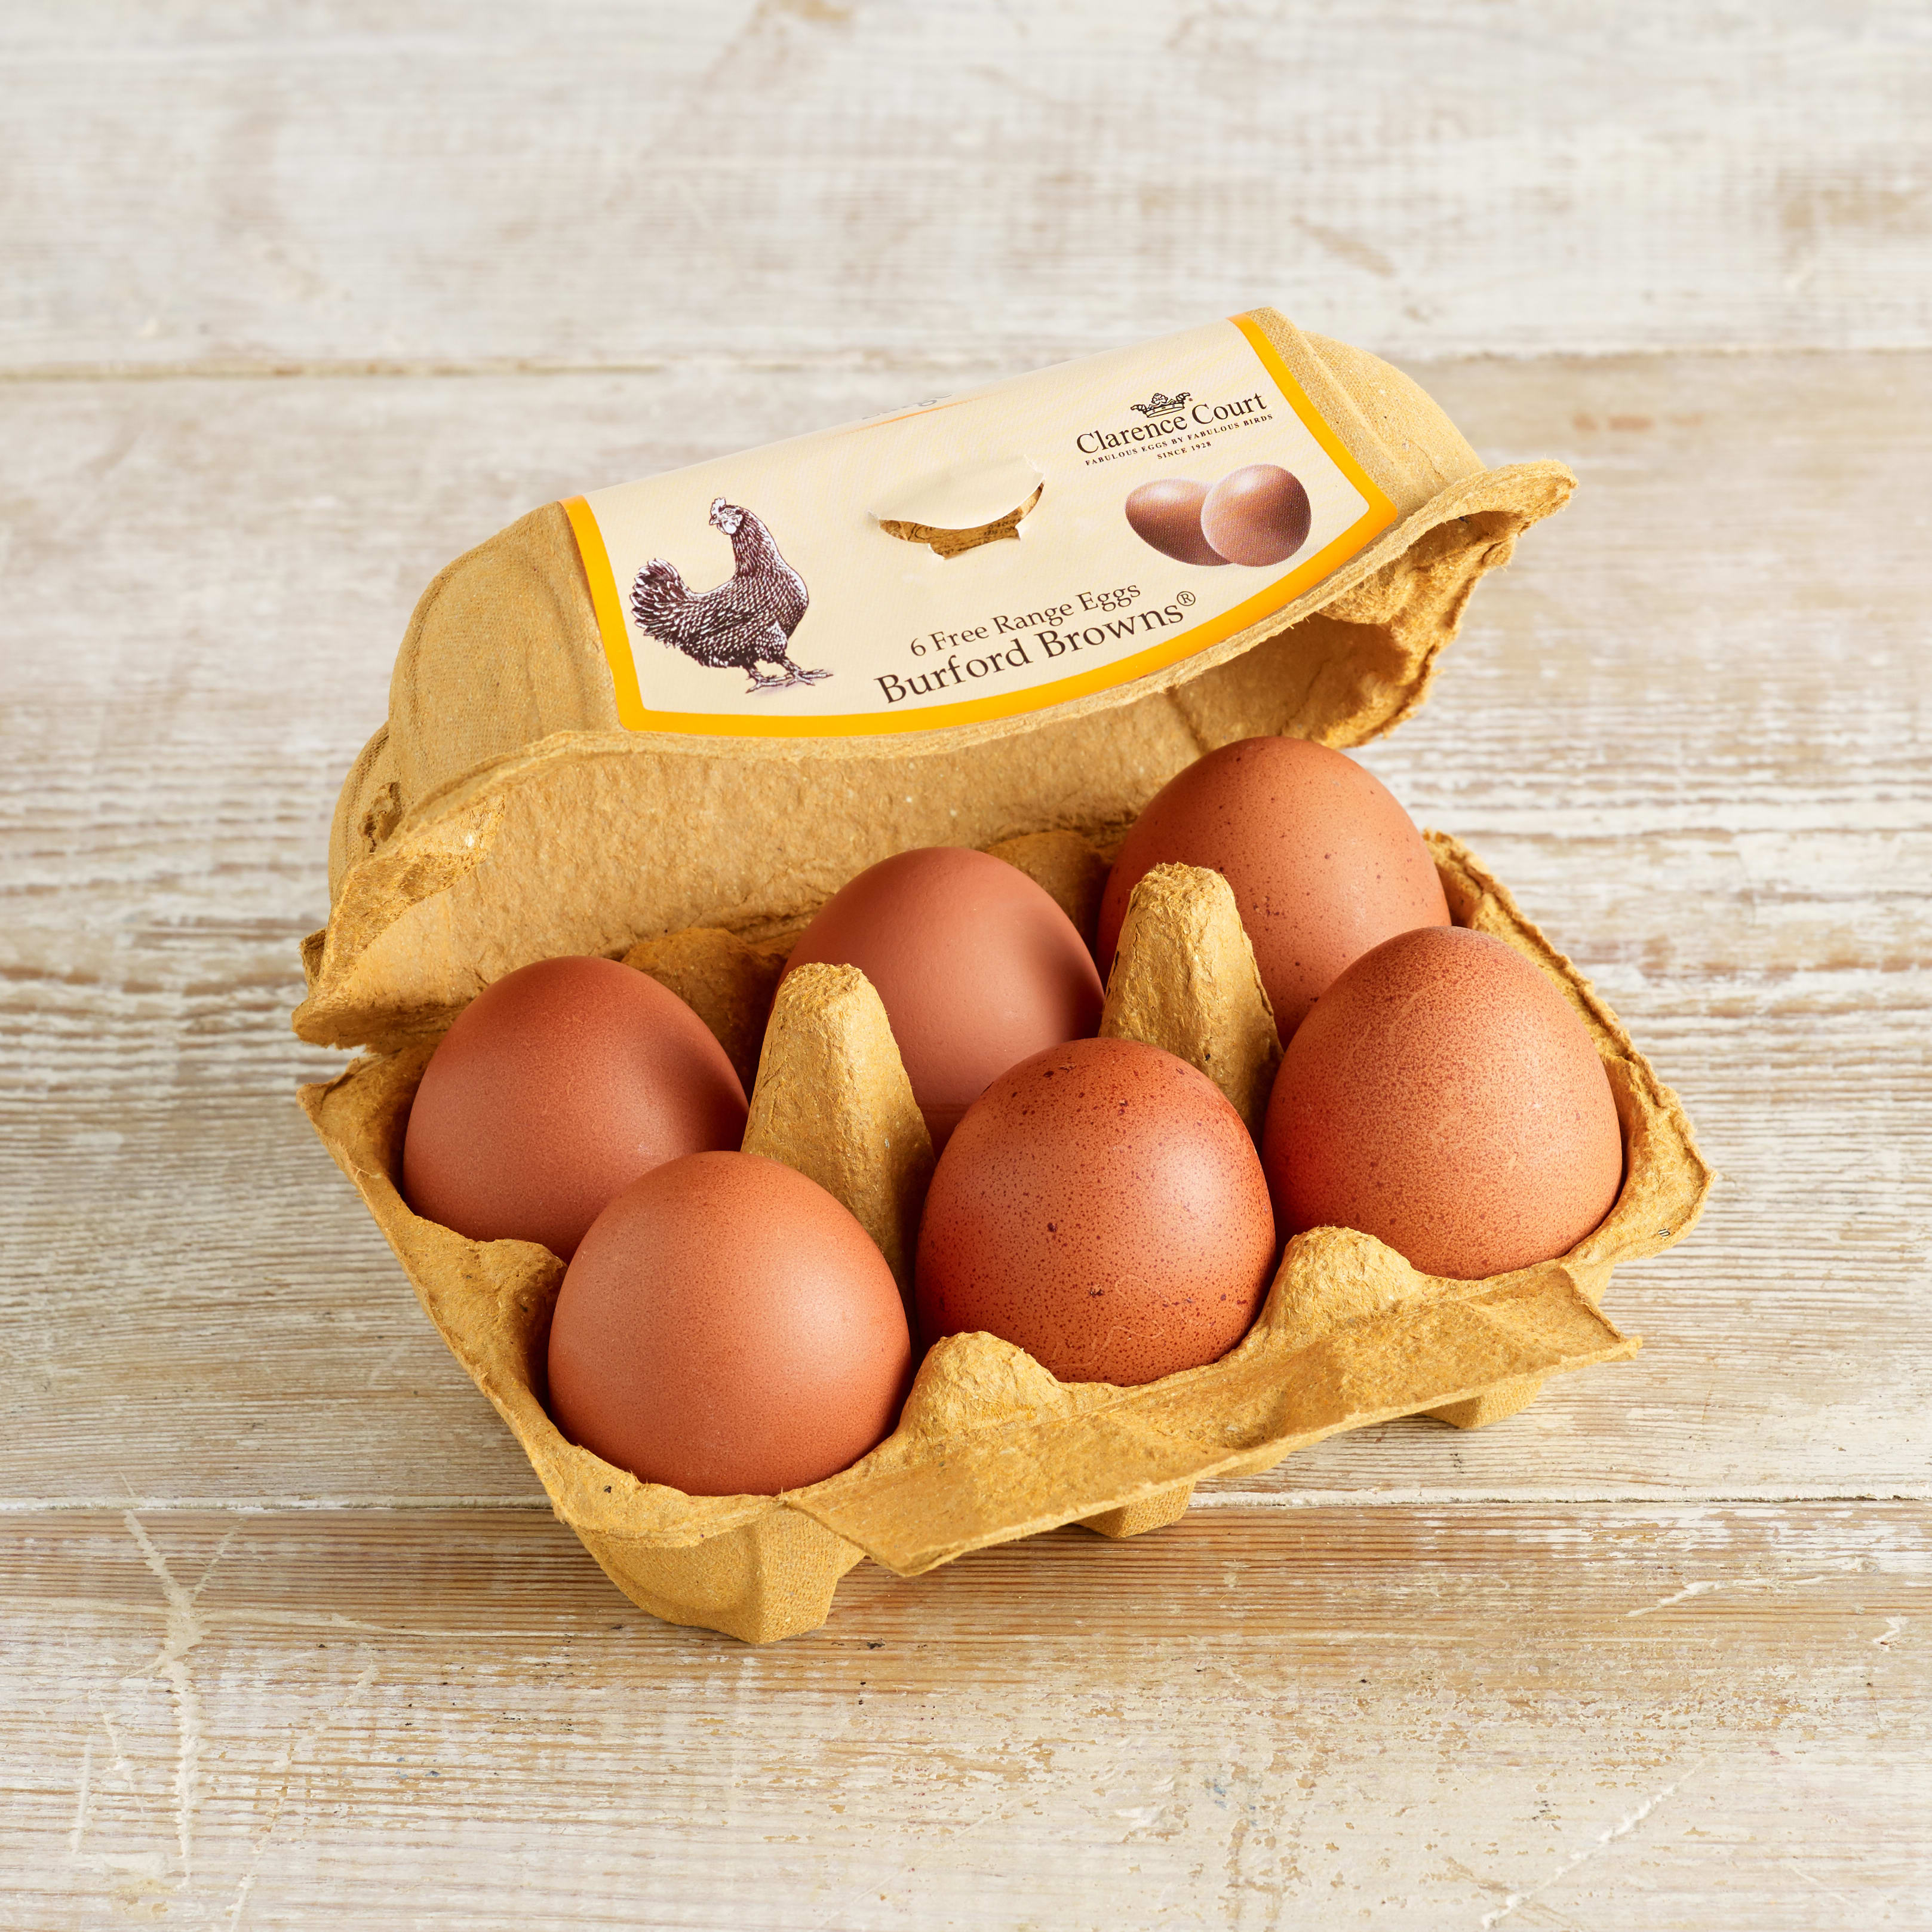 Clarence Court Burford Browns Large Free Range Eggs, 6 pack